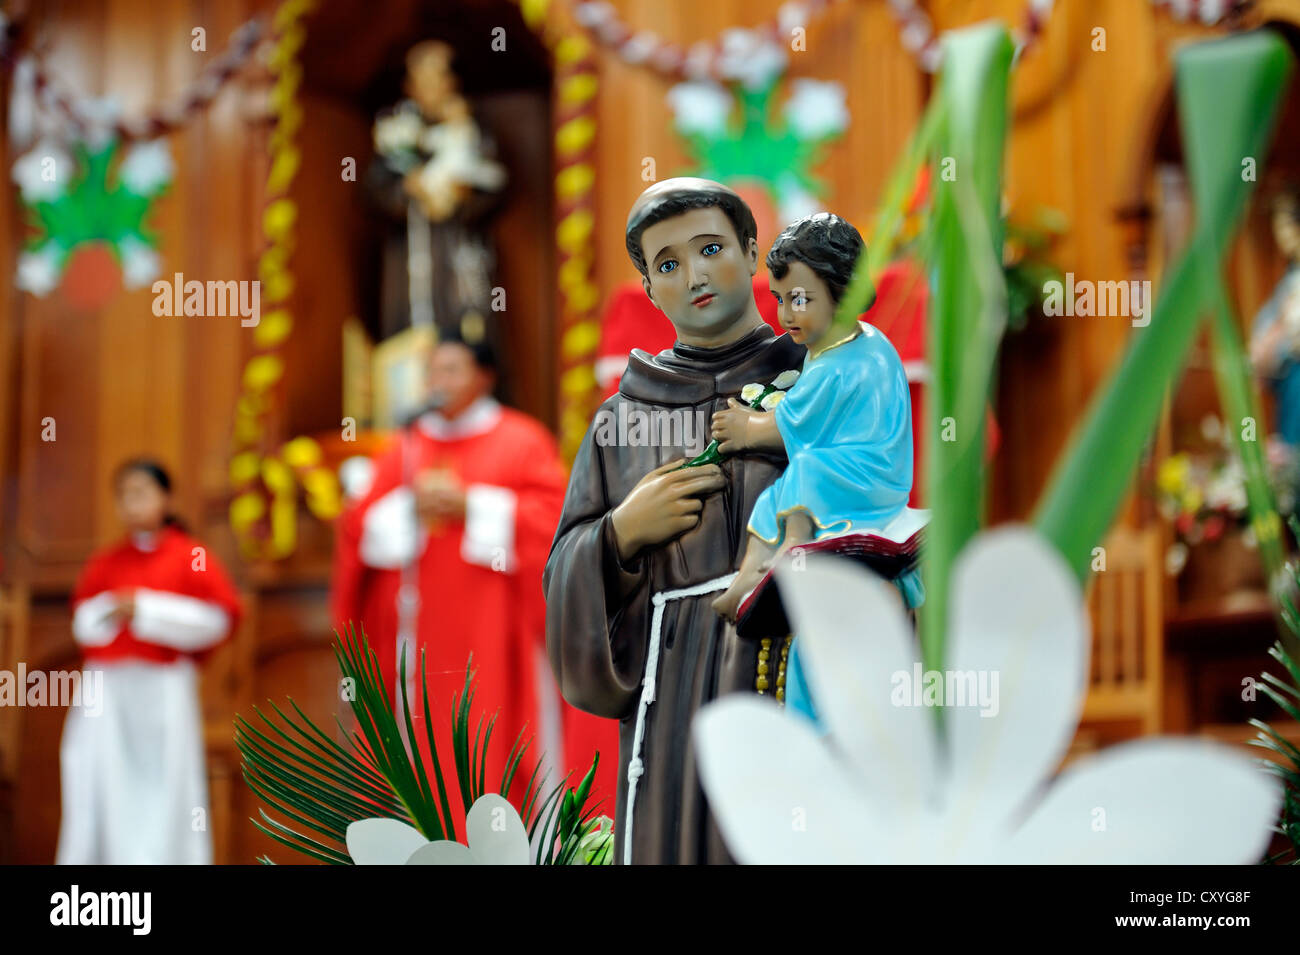 Statue of a saint, St. Anthony, Whitsun mass, Dios Con Nosotros church parish, El Mesquital, Guatemala City, Guatemala - Stock Image